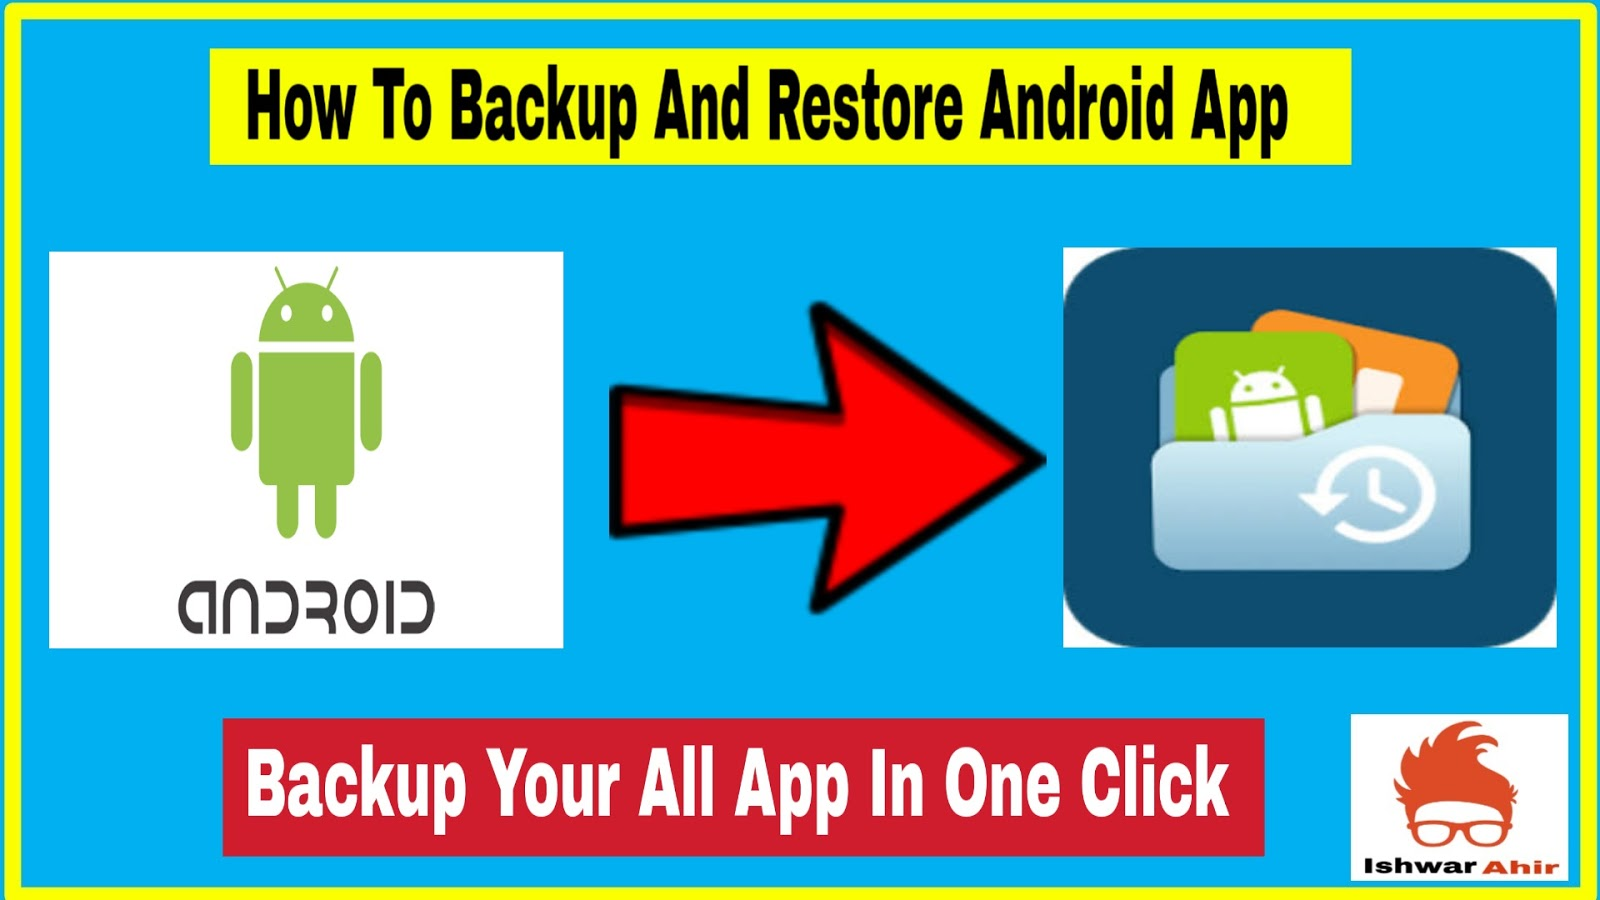 How to Backup and Restore Android App